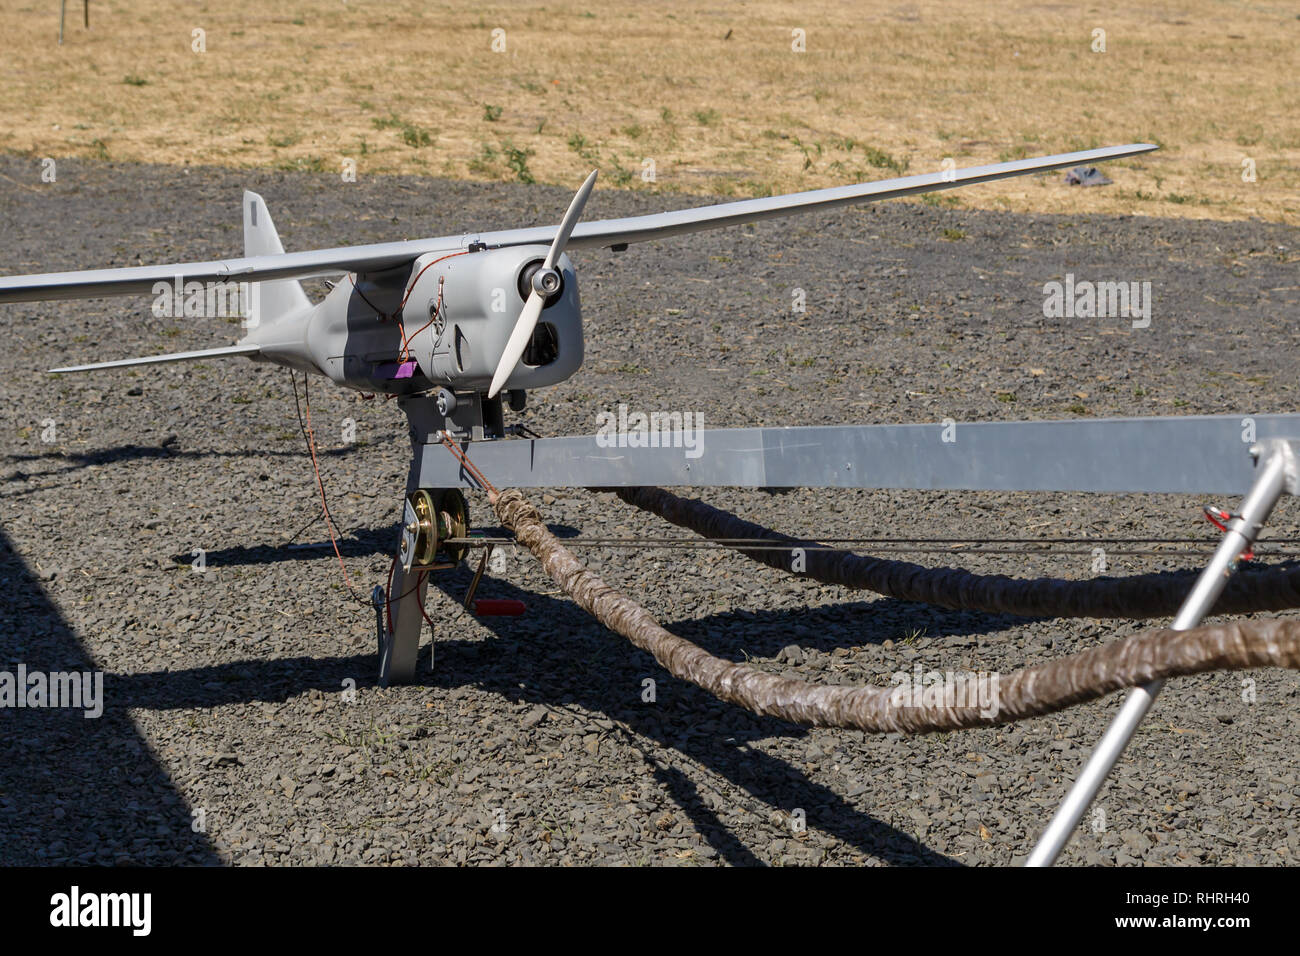 Remotely Piloted Aircraft War Stock Photos & Remotely